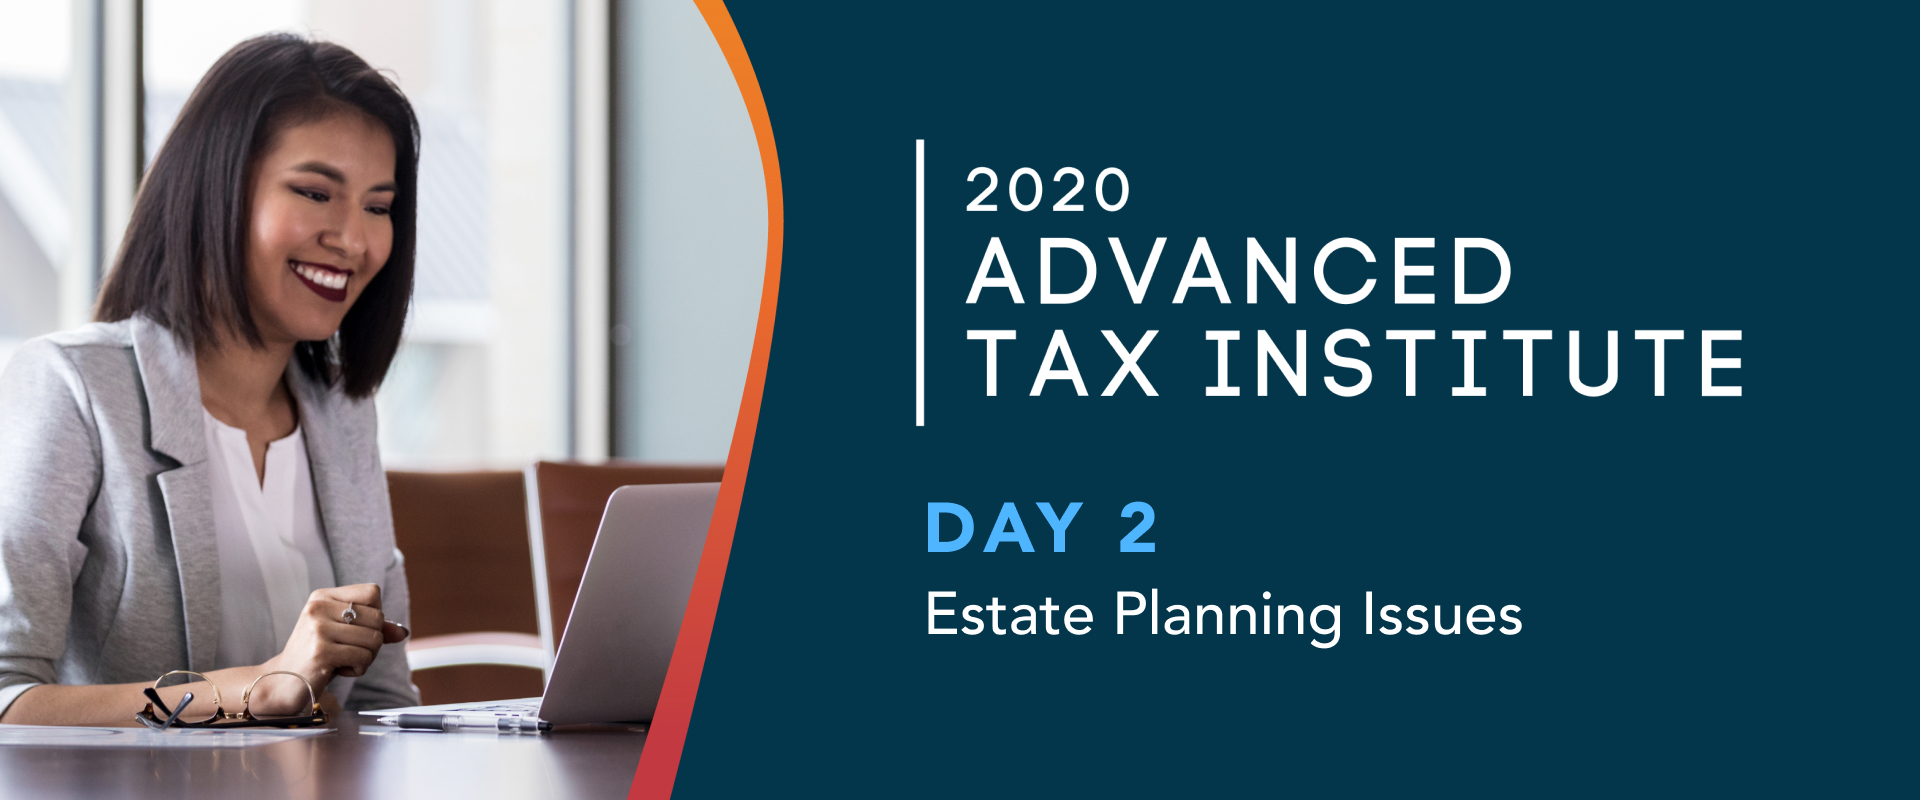 ADVANCED TAX INSTITUTE DAY 2 – Estate Planning Issues